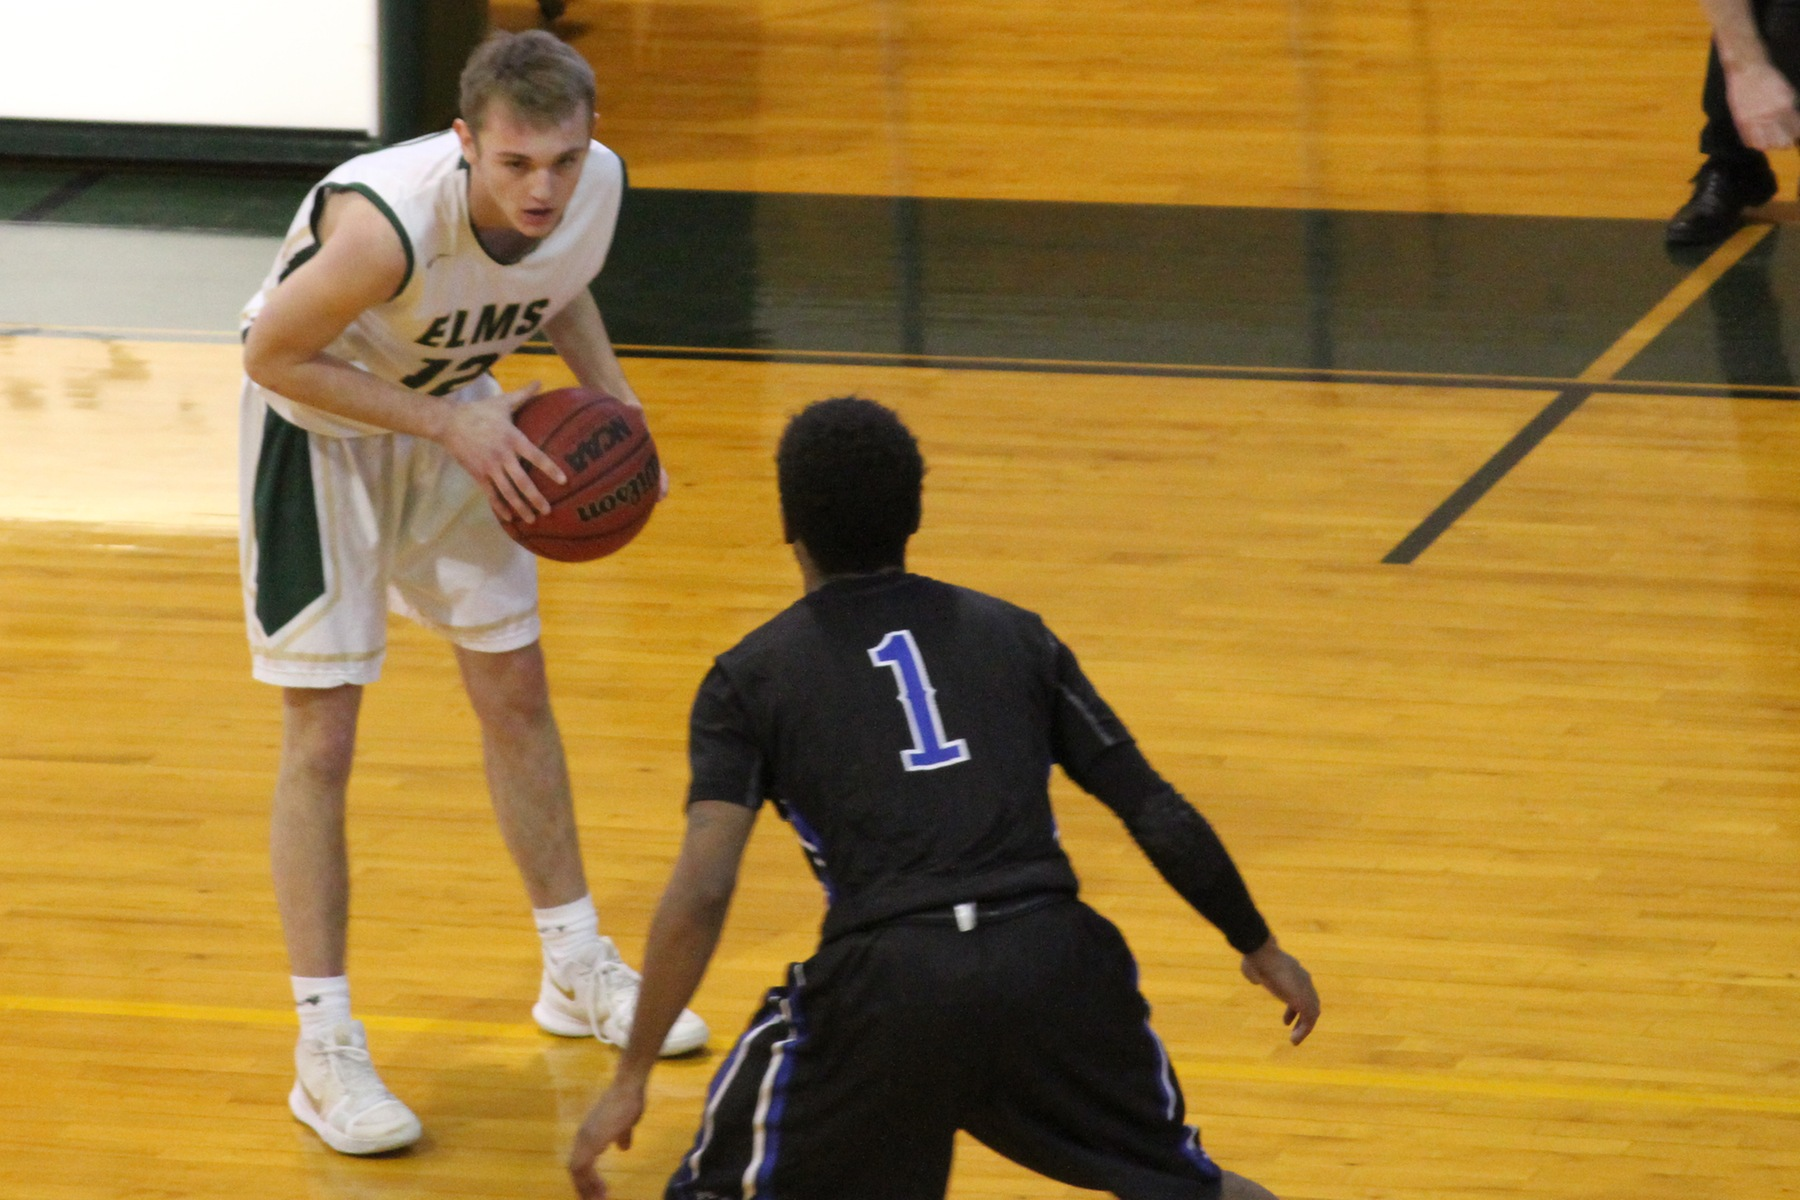 Ohradka's 29-Point Outburst Paces Men's Hoops To Victory